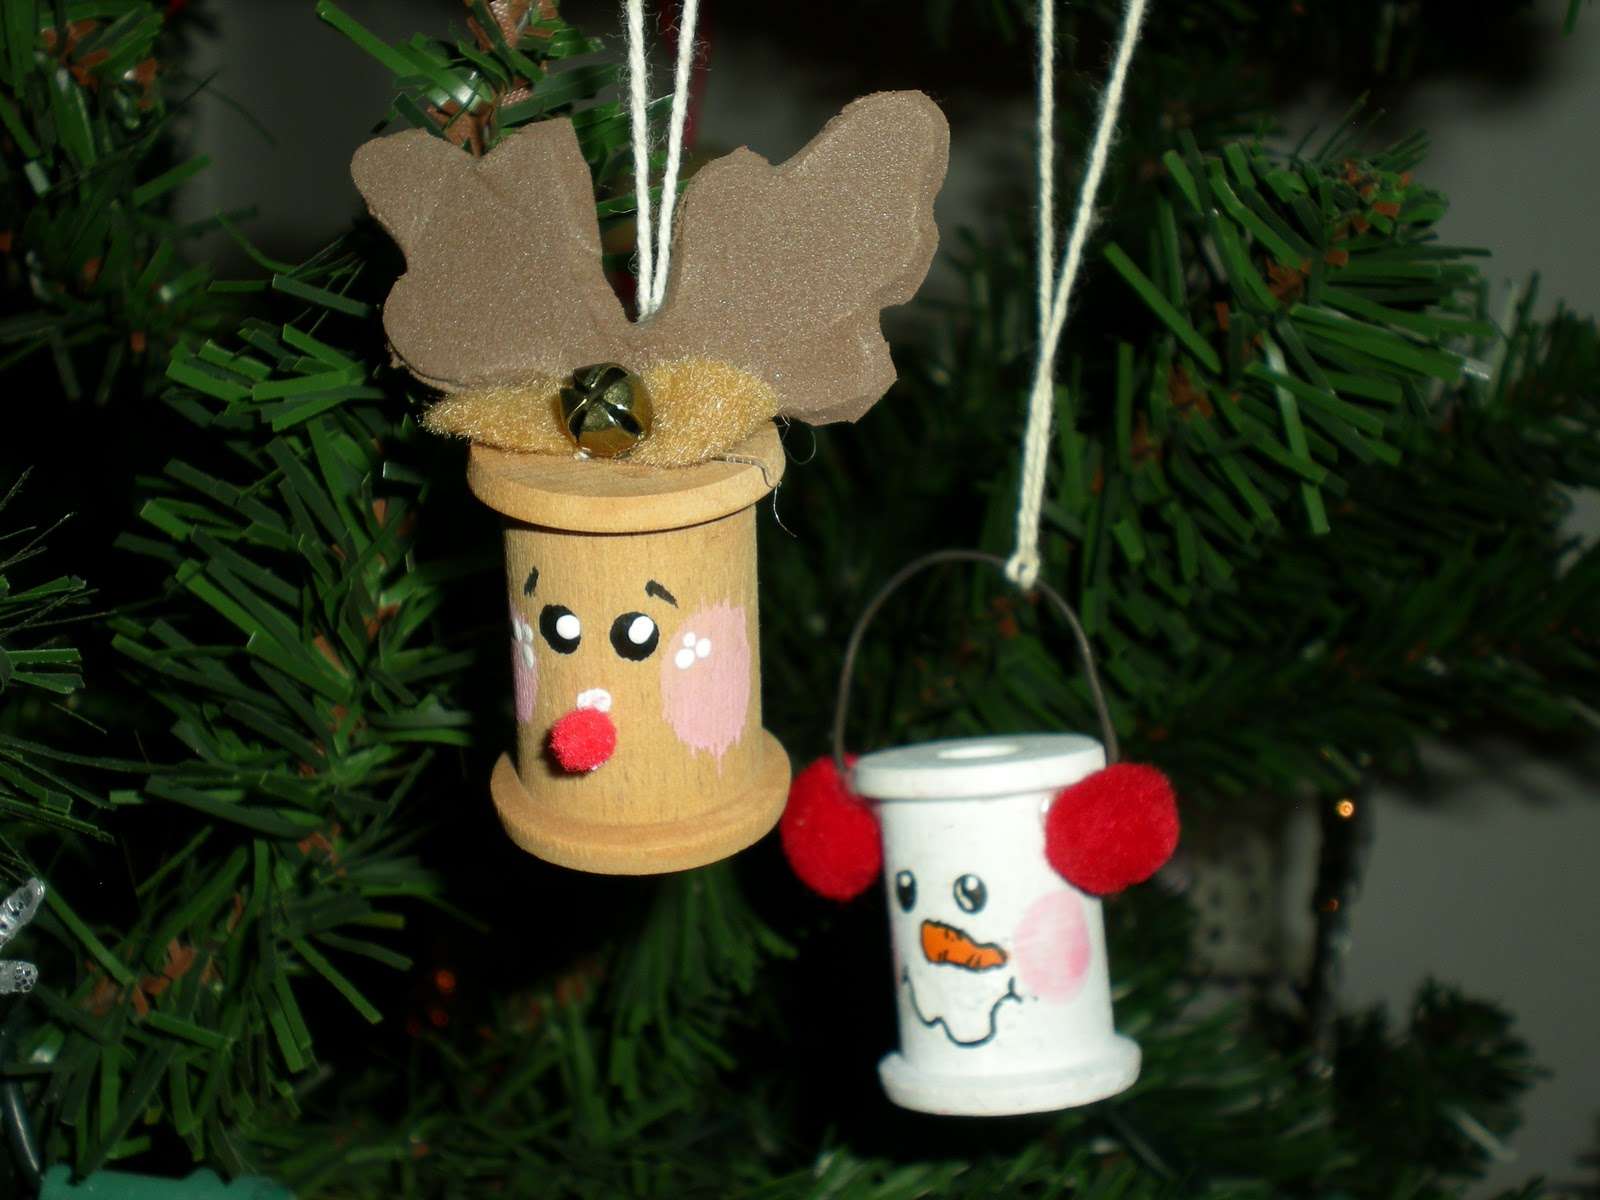 25 days of Christmas crafts: DAY 5 (Homemade Christmas ...